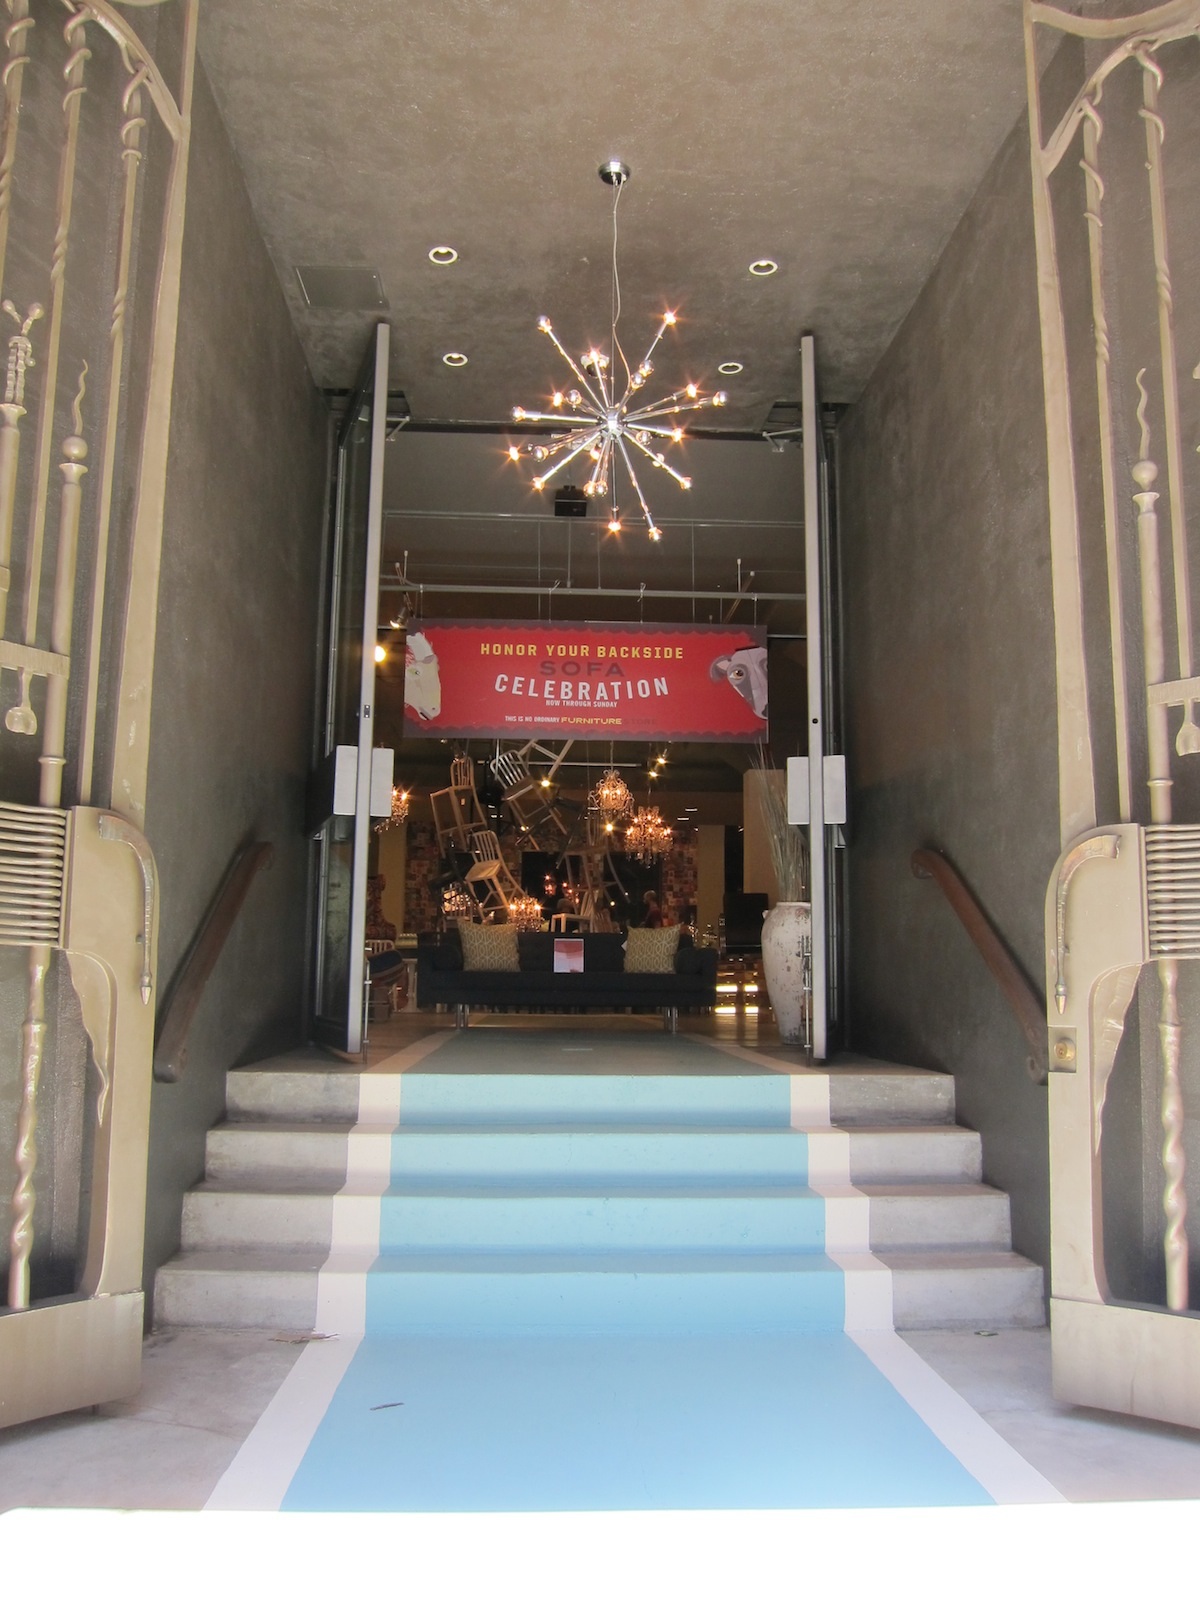 Here's the entrance to H.D. Buttercup, located in the former Limn space in SOMA in San Francisco.